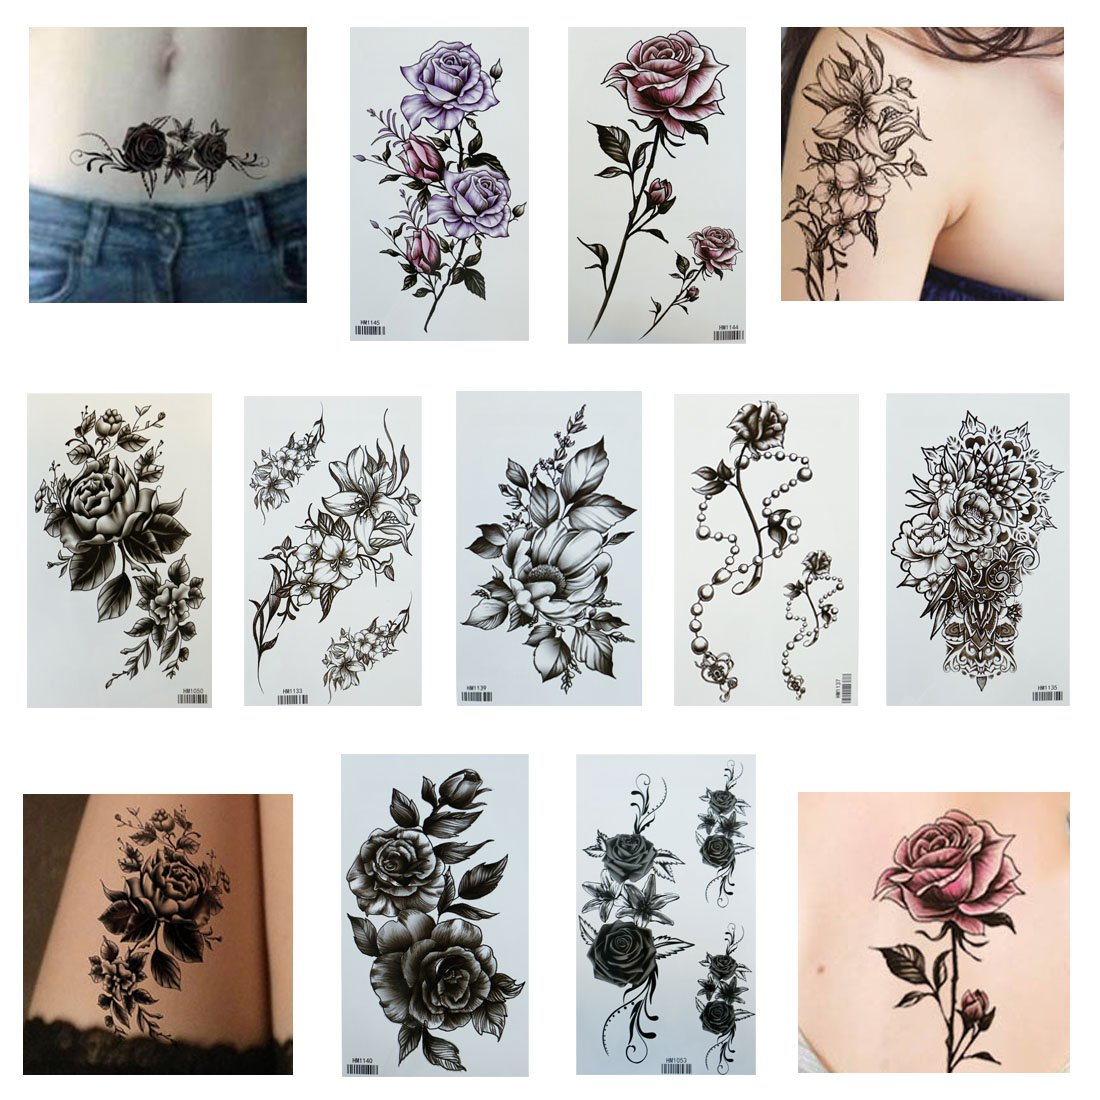 Queentas 9 Sheets Large Temporary Tattoos Butterfly Paper Sexy Body Tattoo Sticker for Women & Girl Fake Tattoo